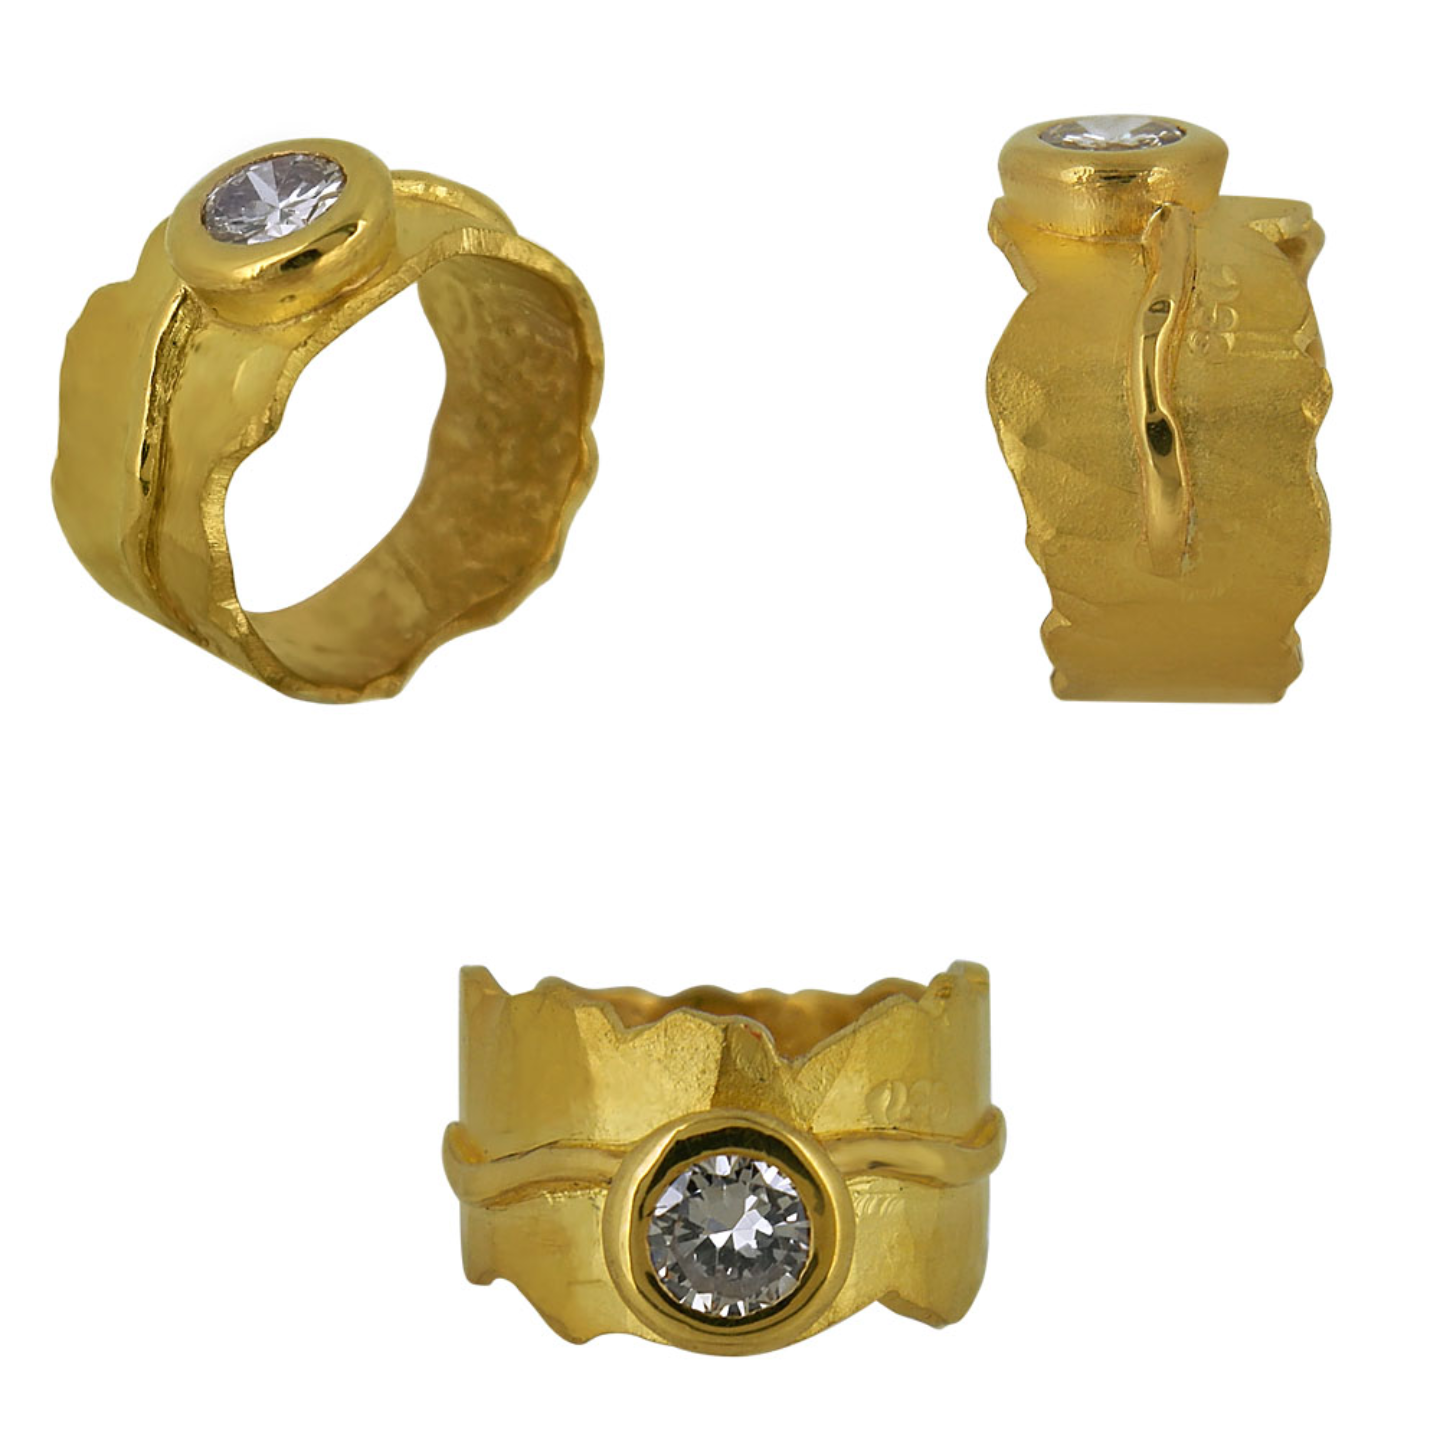 An organic textured bold gold band witha solitaire